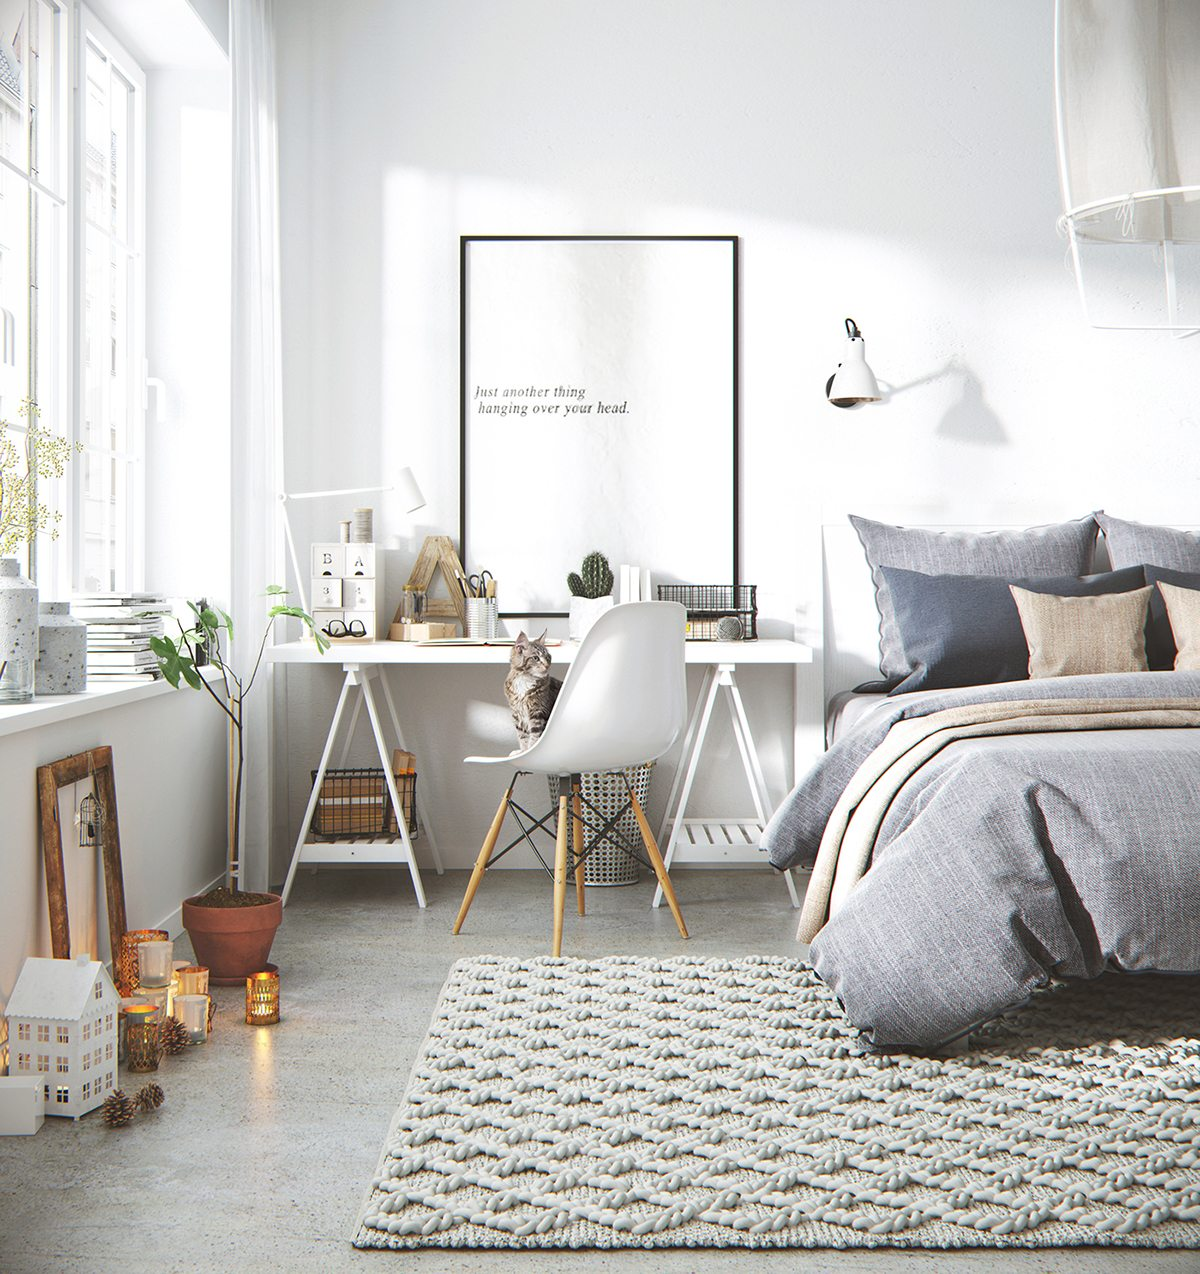 Scandinavian Design Bedroom Set Bright And Cheerful 5 Beautiful Scandinavian Inspired